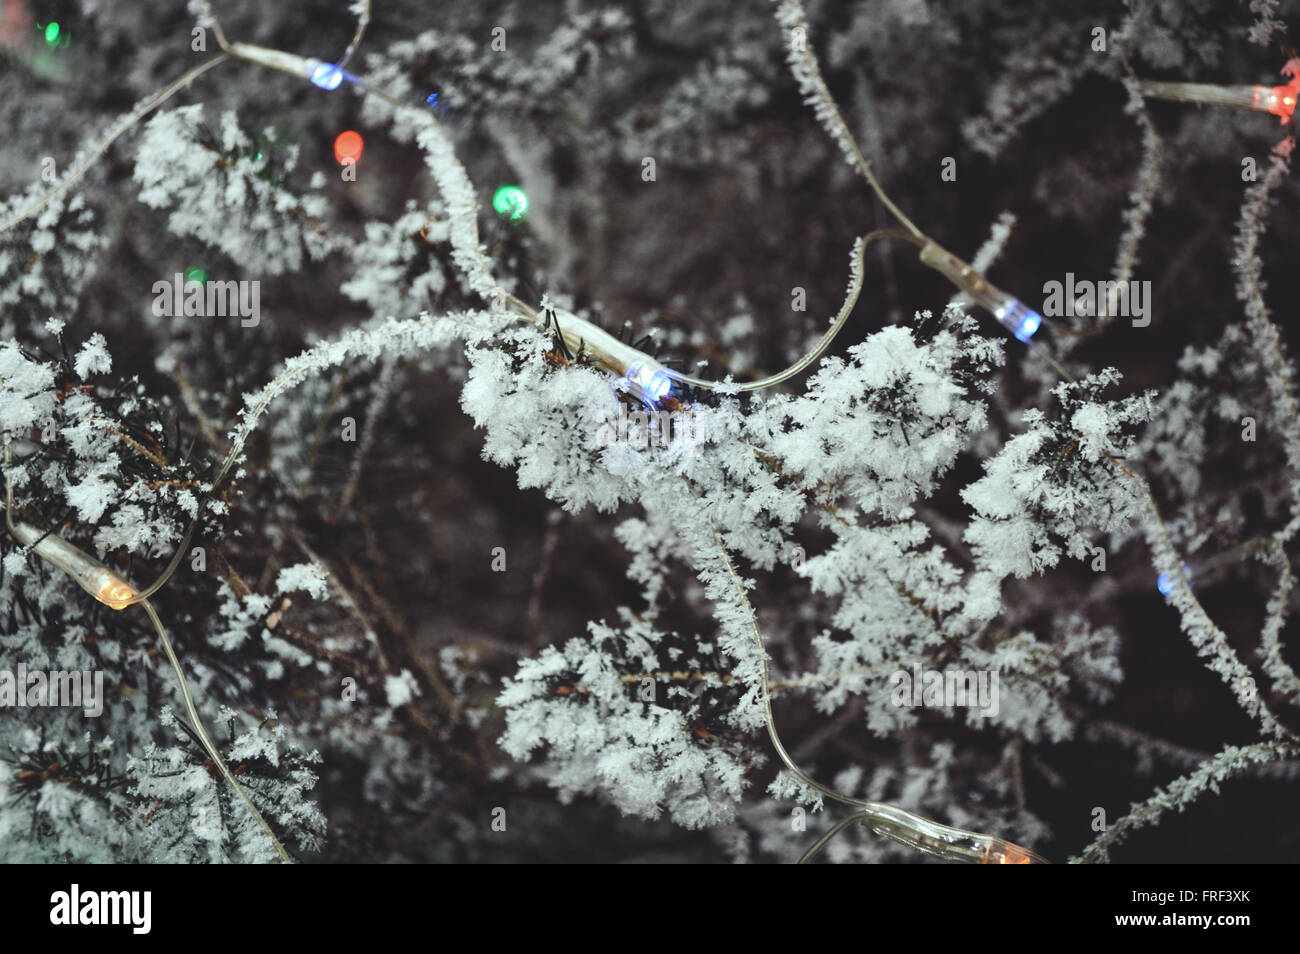 White cristals on the outside christmas tree caused because of snow. - Stock Image